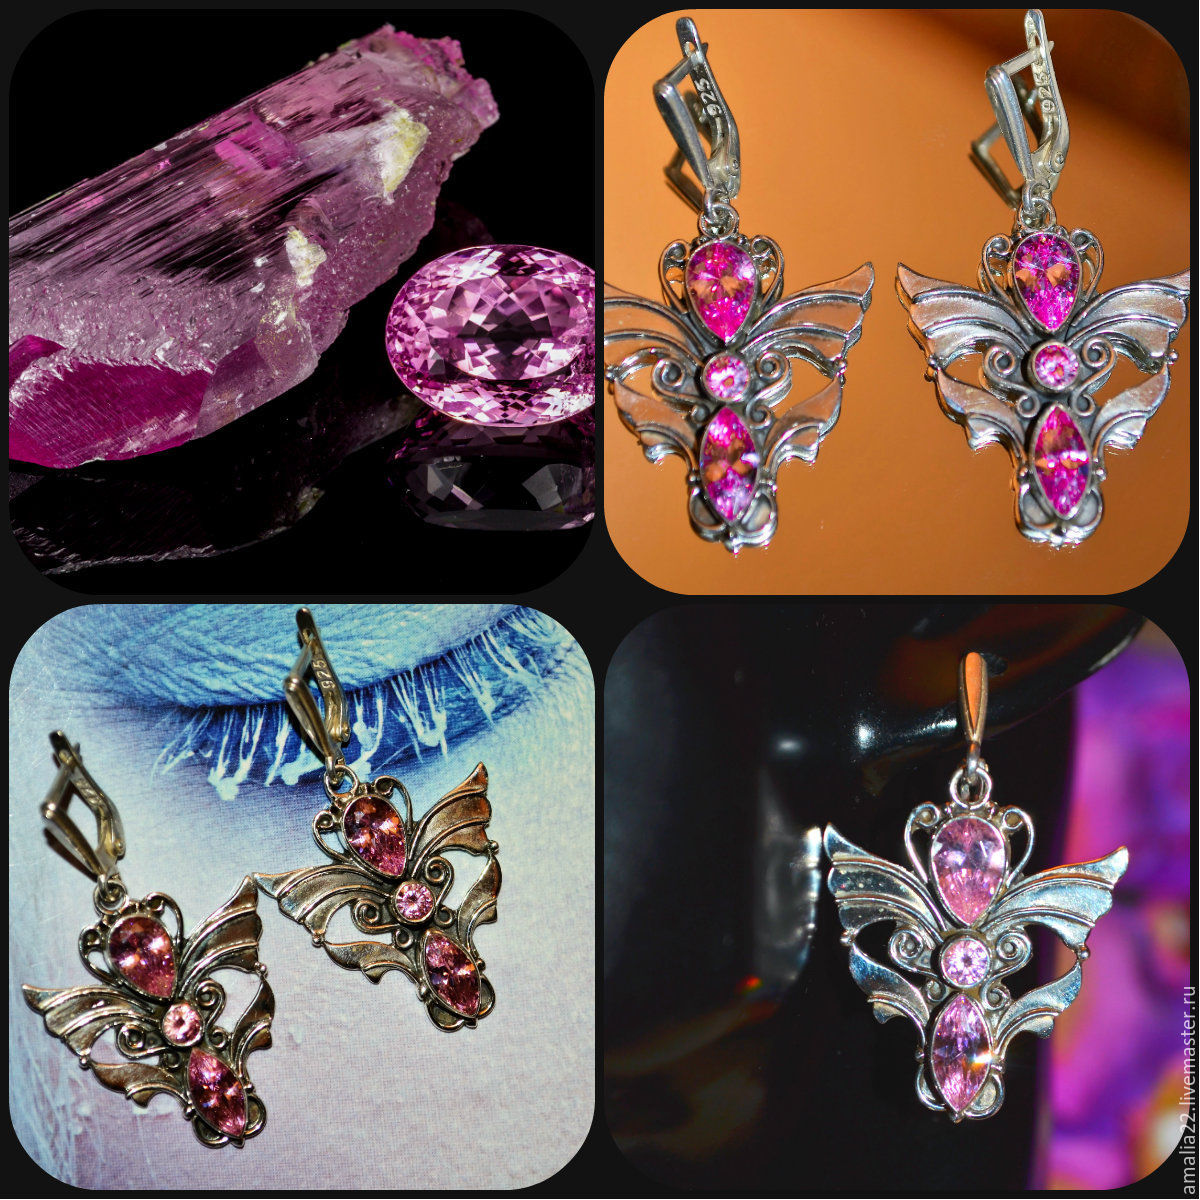 Earrings 'Wings Of The Archangels' Kunzite 925 Sterling Silver, Earrings, Moscow,  Фото №1